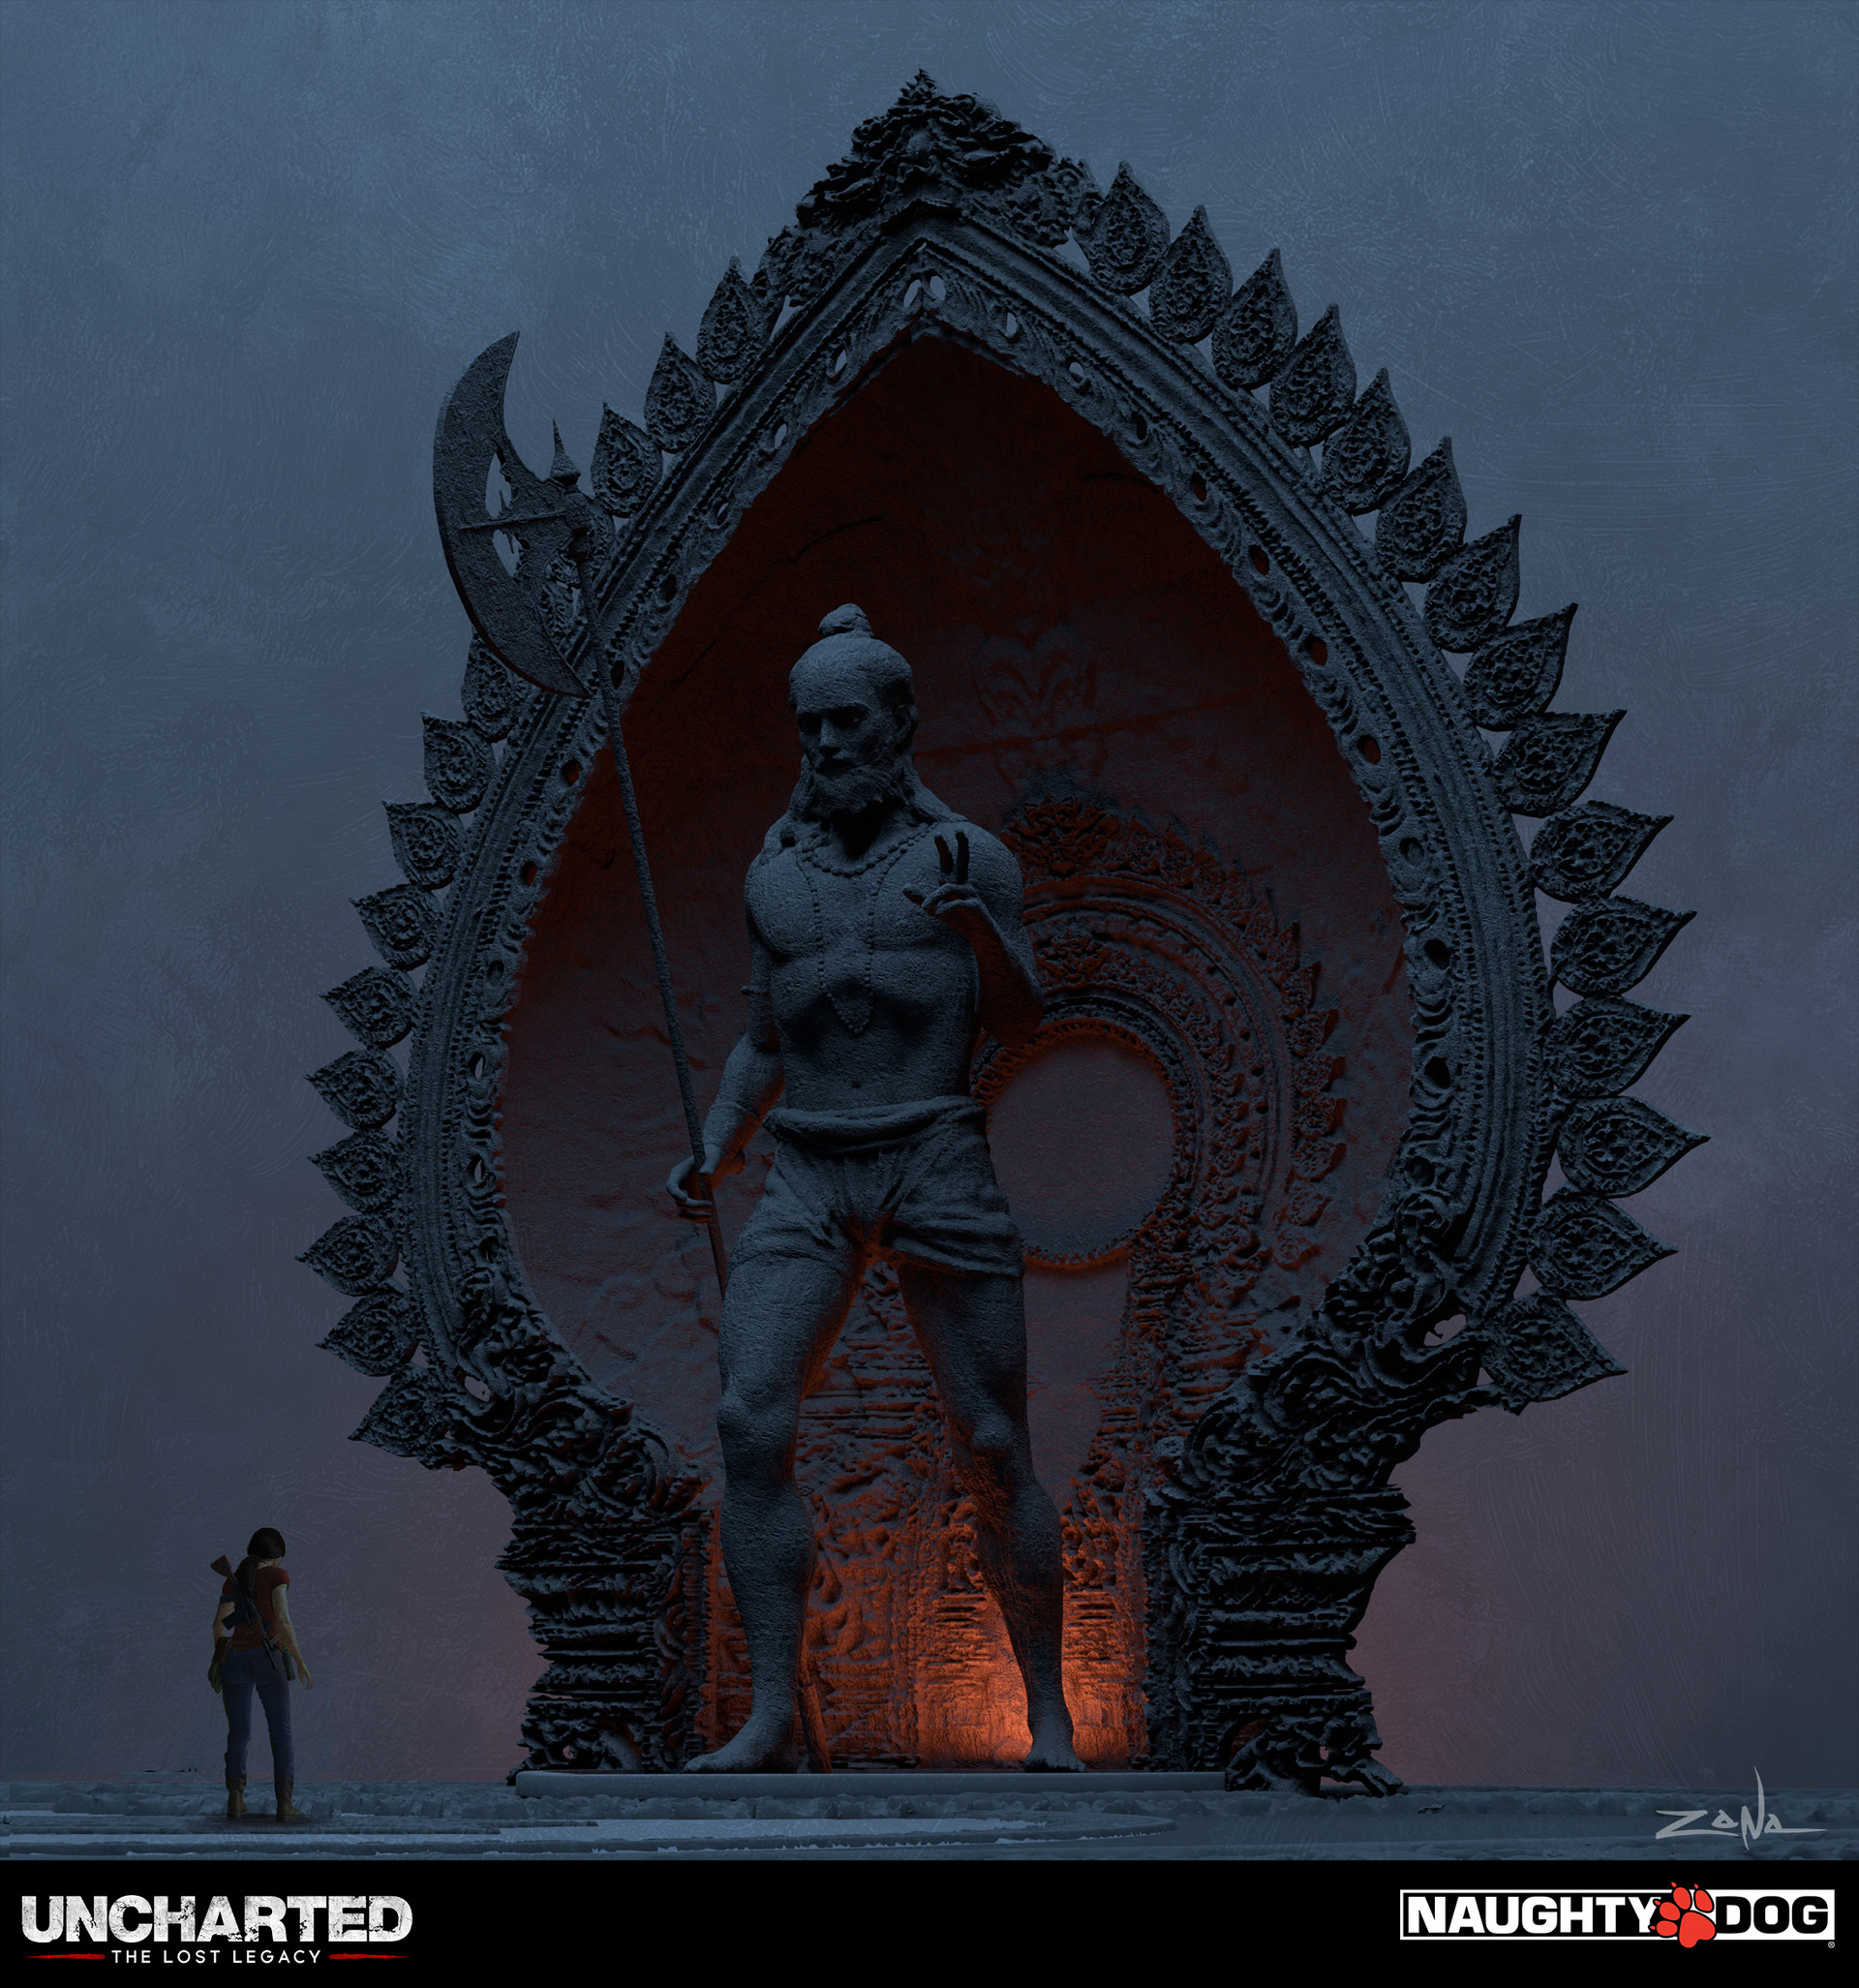 Uncharted the lost legacy shiva temple statue designs